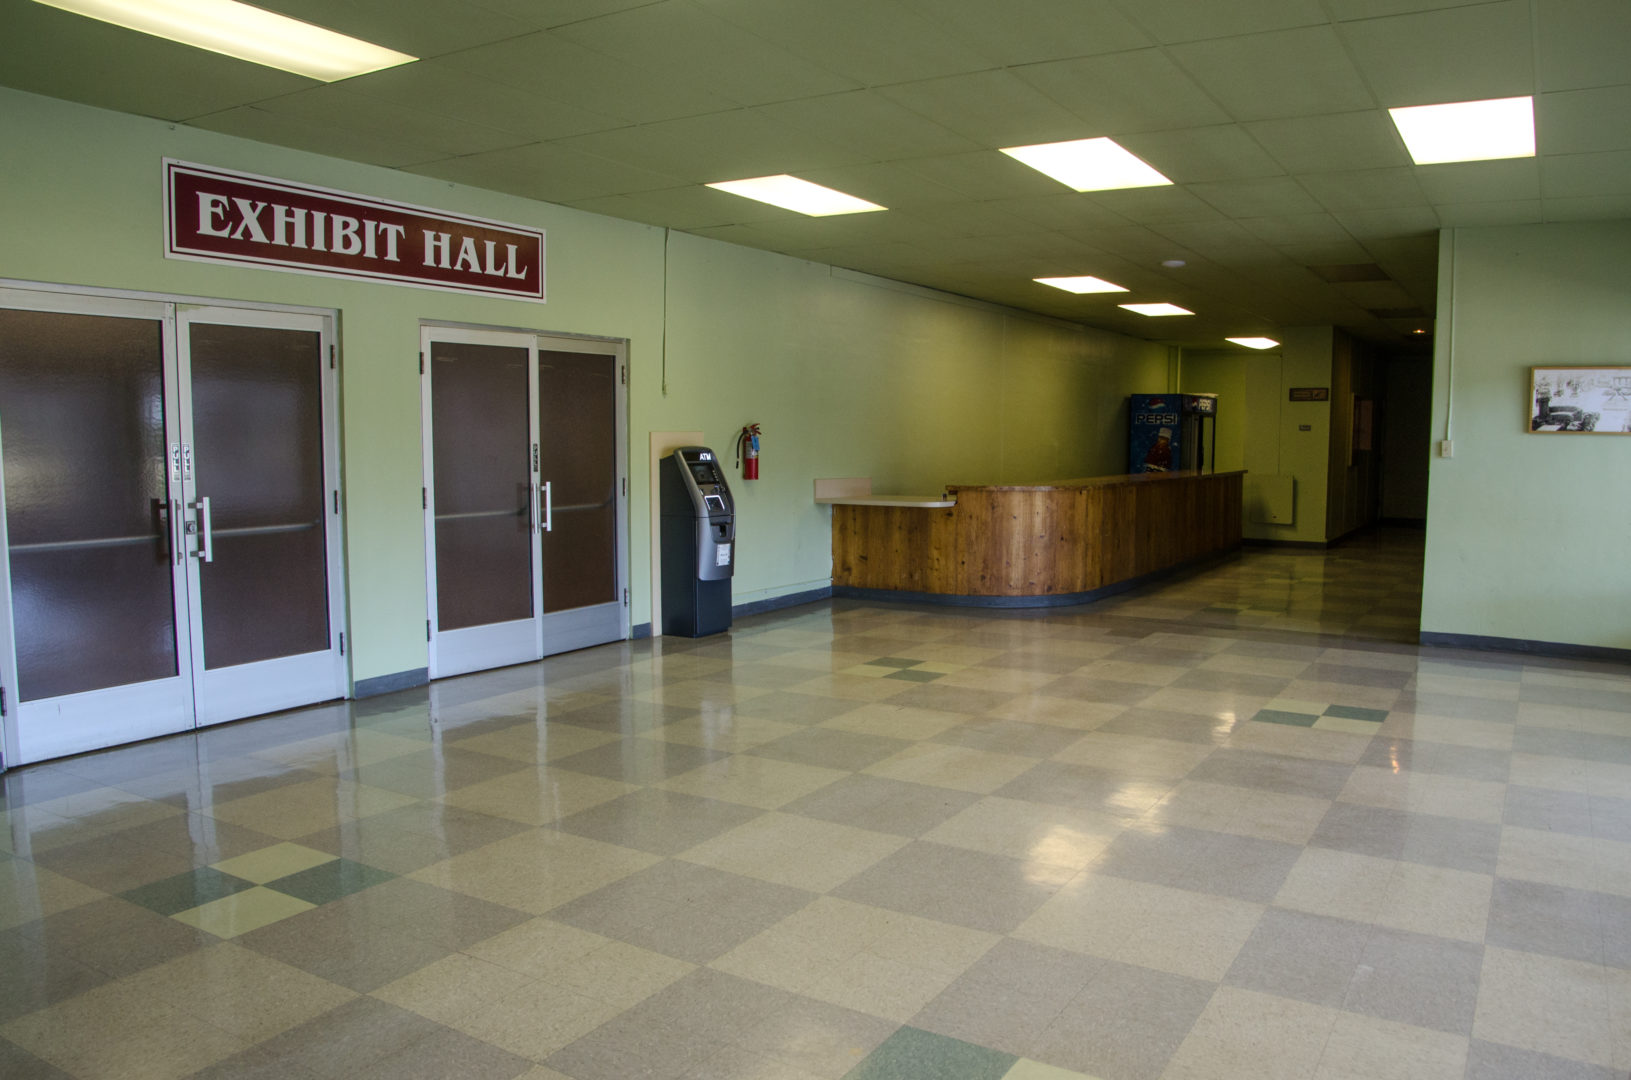 Exhibit Hall Facilities Available for Rent